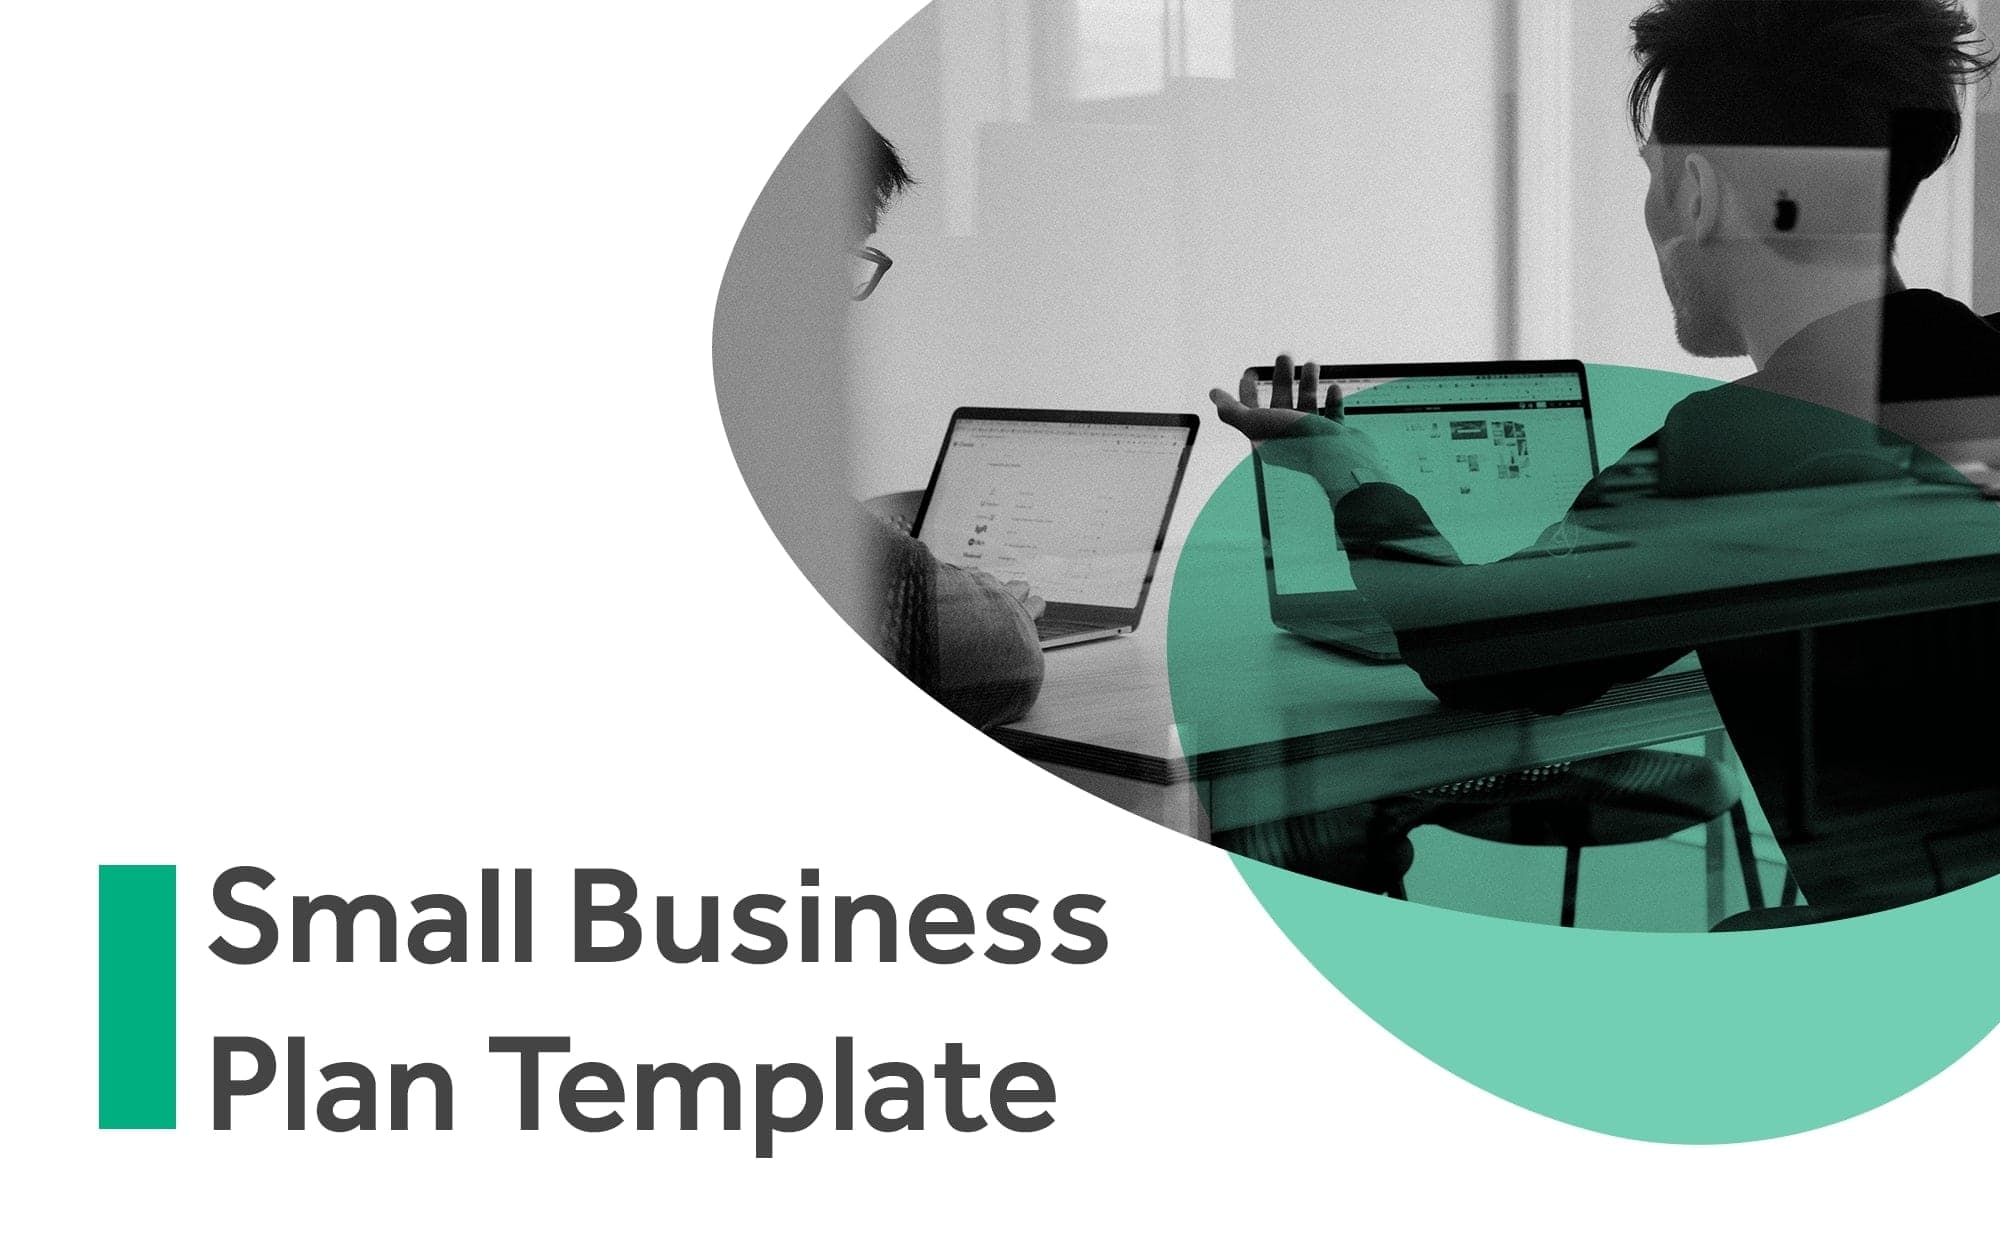 Small Business plan cover